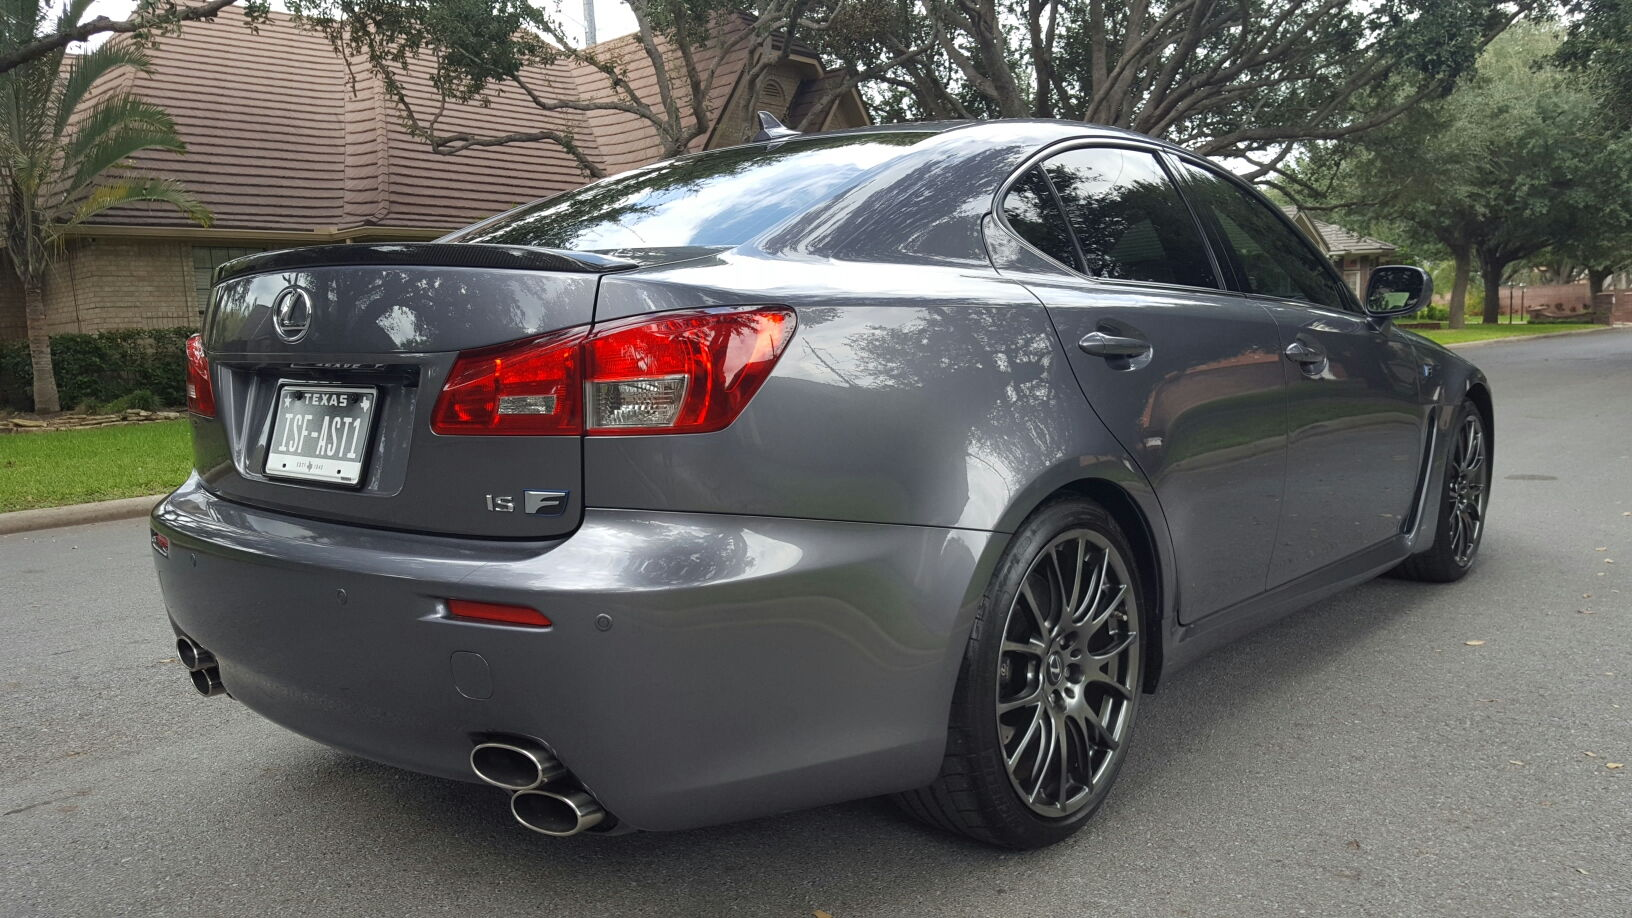 tx 2014 is f for sale 10 500 miles south texas club lexus forums. Black Bedroom Furniture Sets. Home Design Ideas